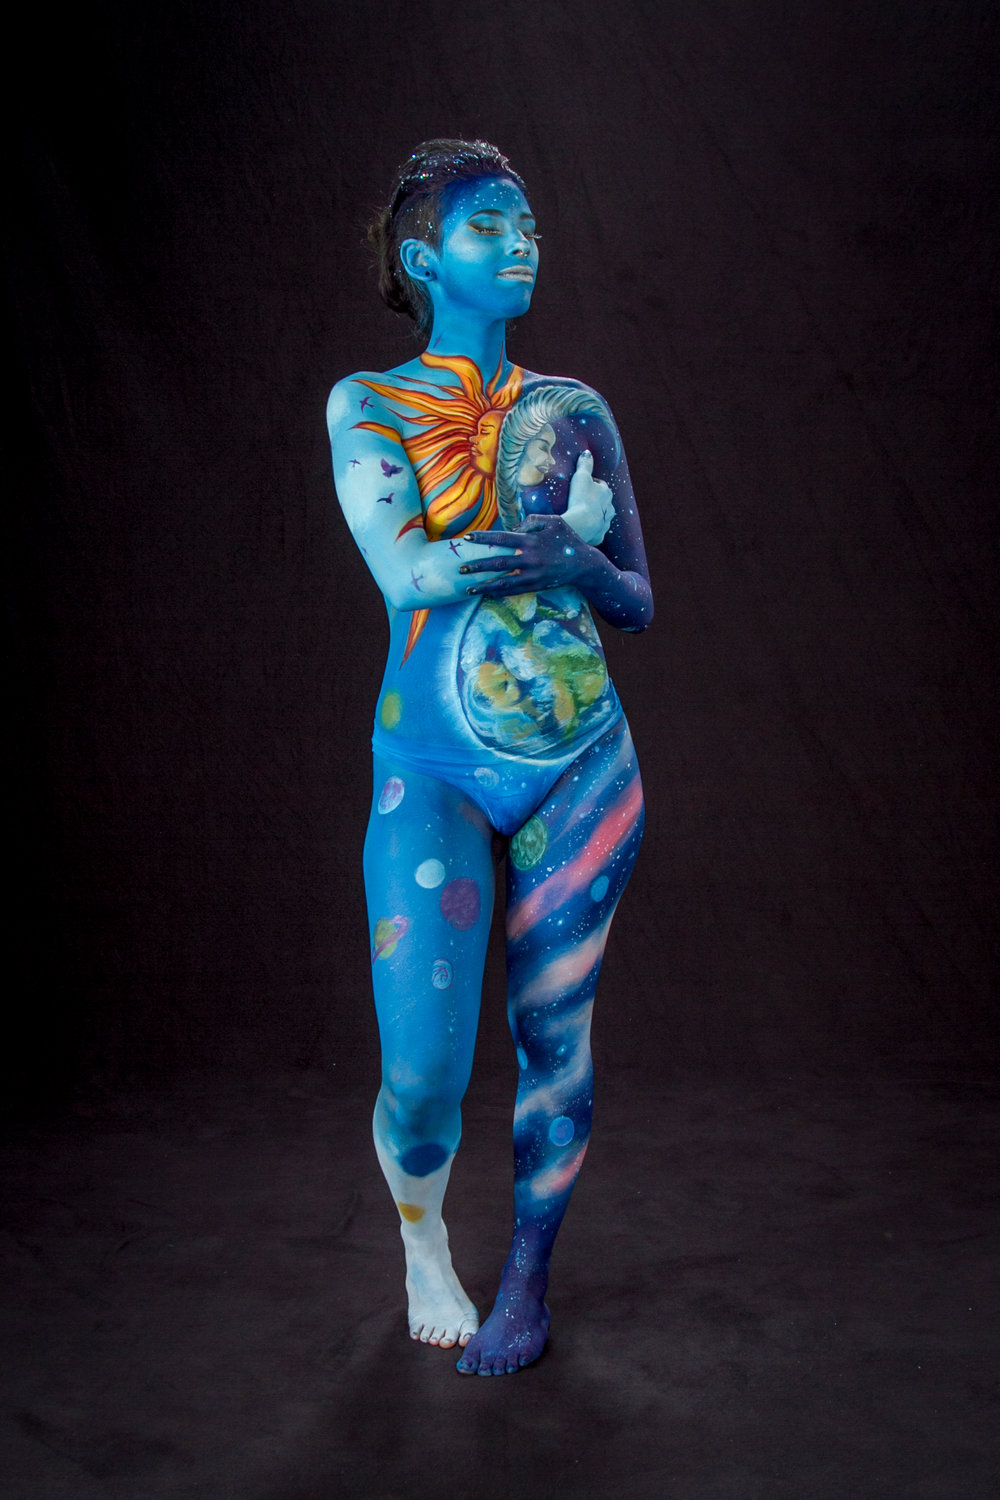 Galaxy Girl. painted on my model, Samantha - New Orleans. She is an aspiring artist and beautiful soul. Shot by Photographer, Phil Brown.